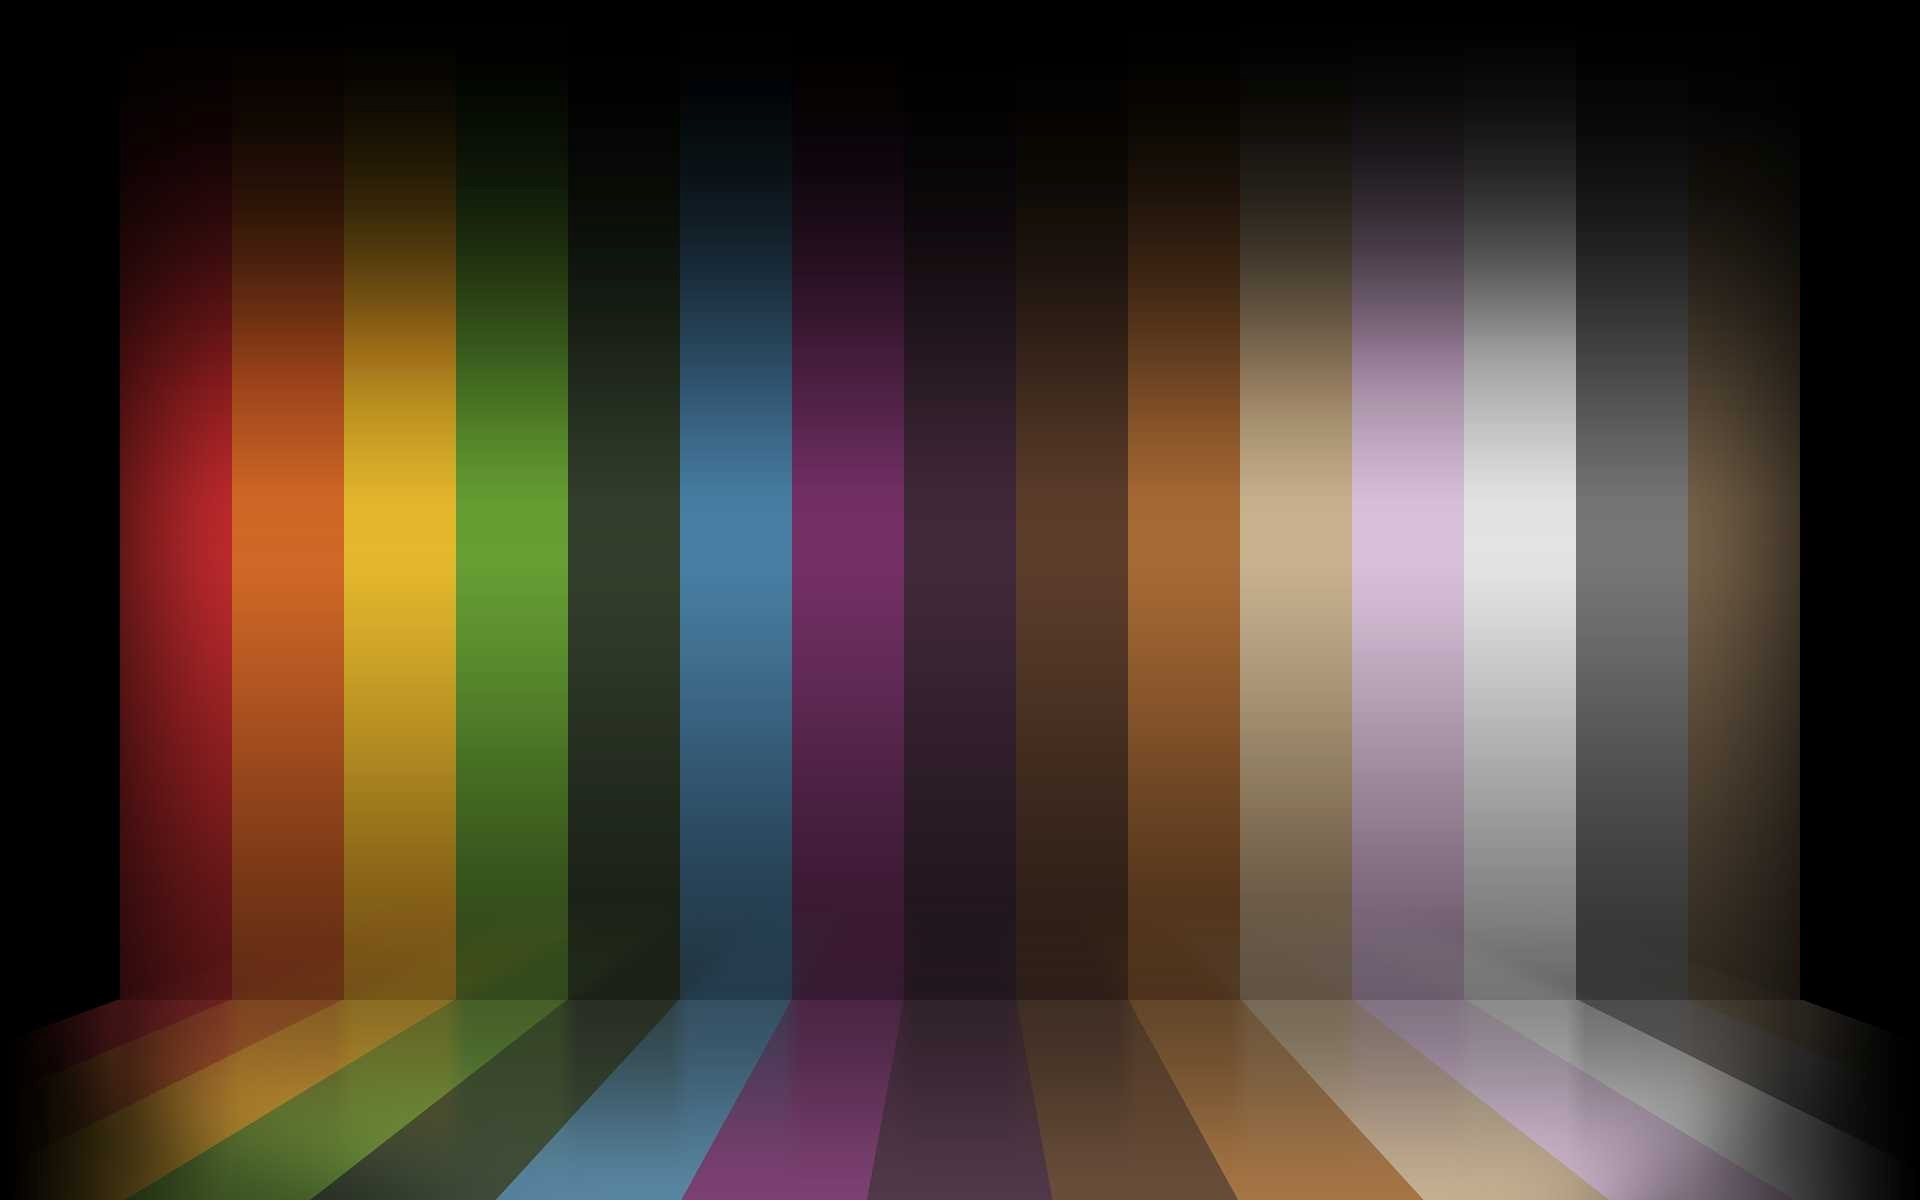 Android Solid Color Wallpaper 71 Images